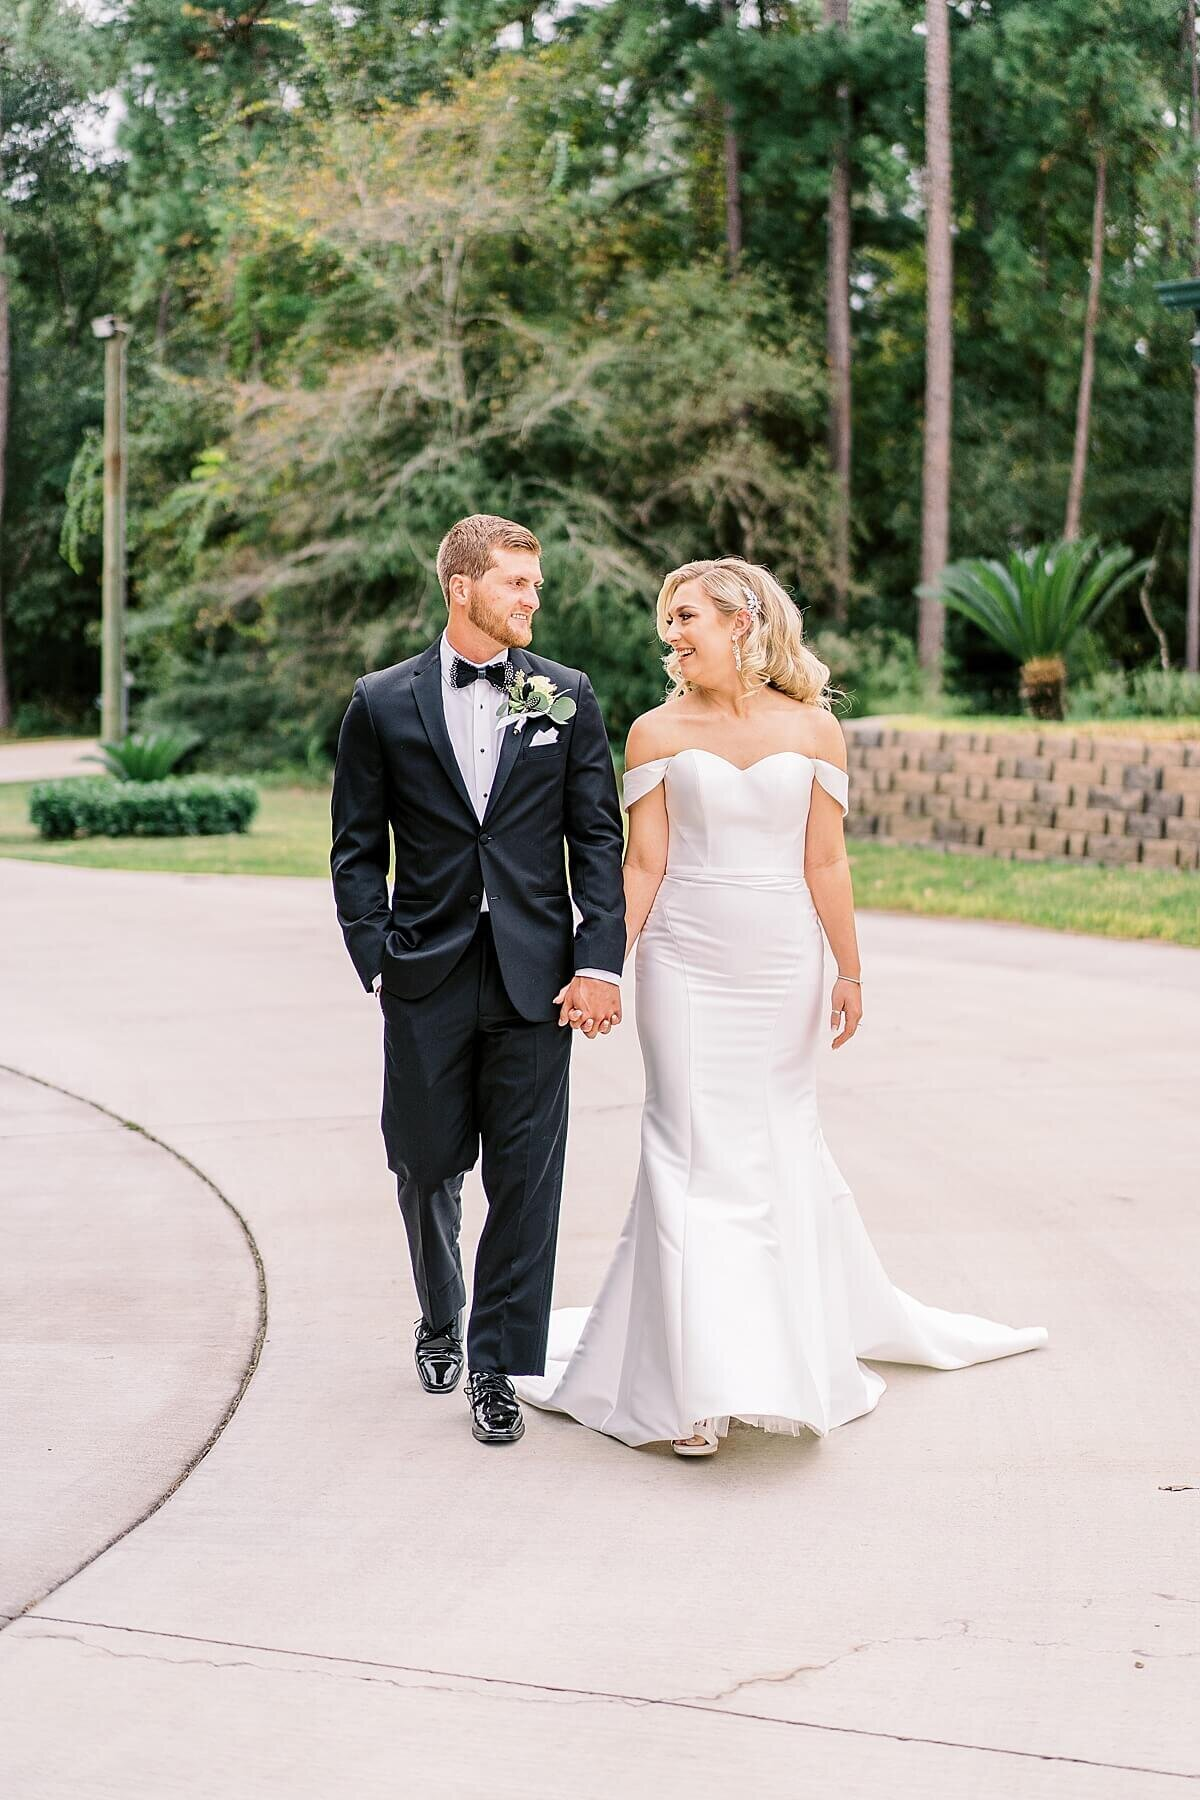 First Look at Black Tie Wedding at the Annex photographed by Alicia Yarrish Photography